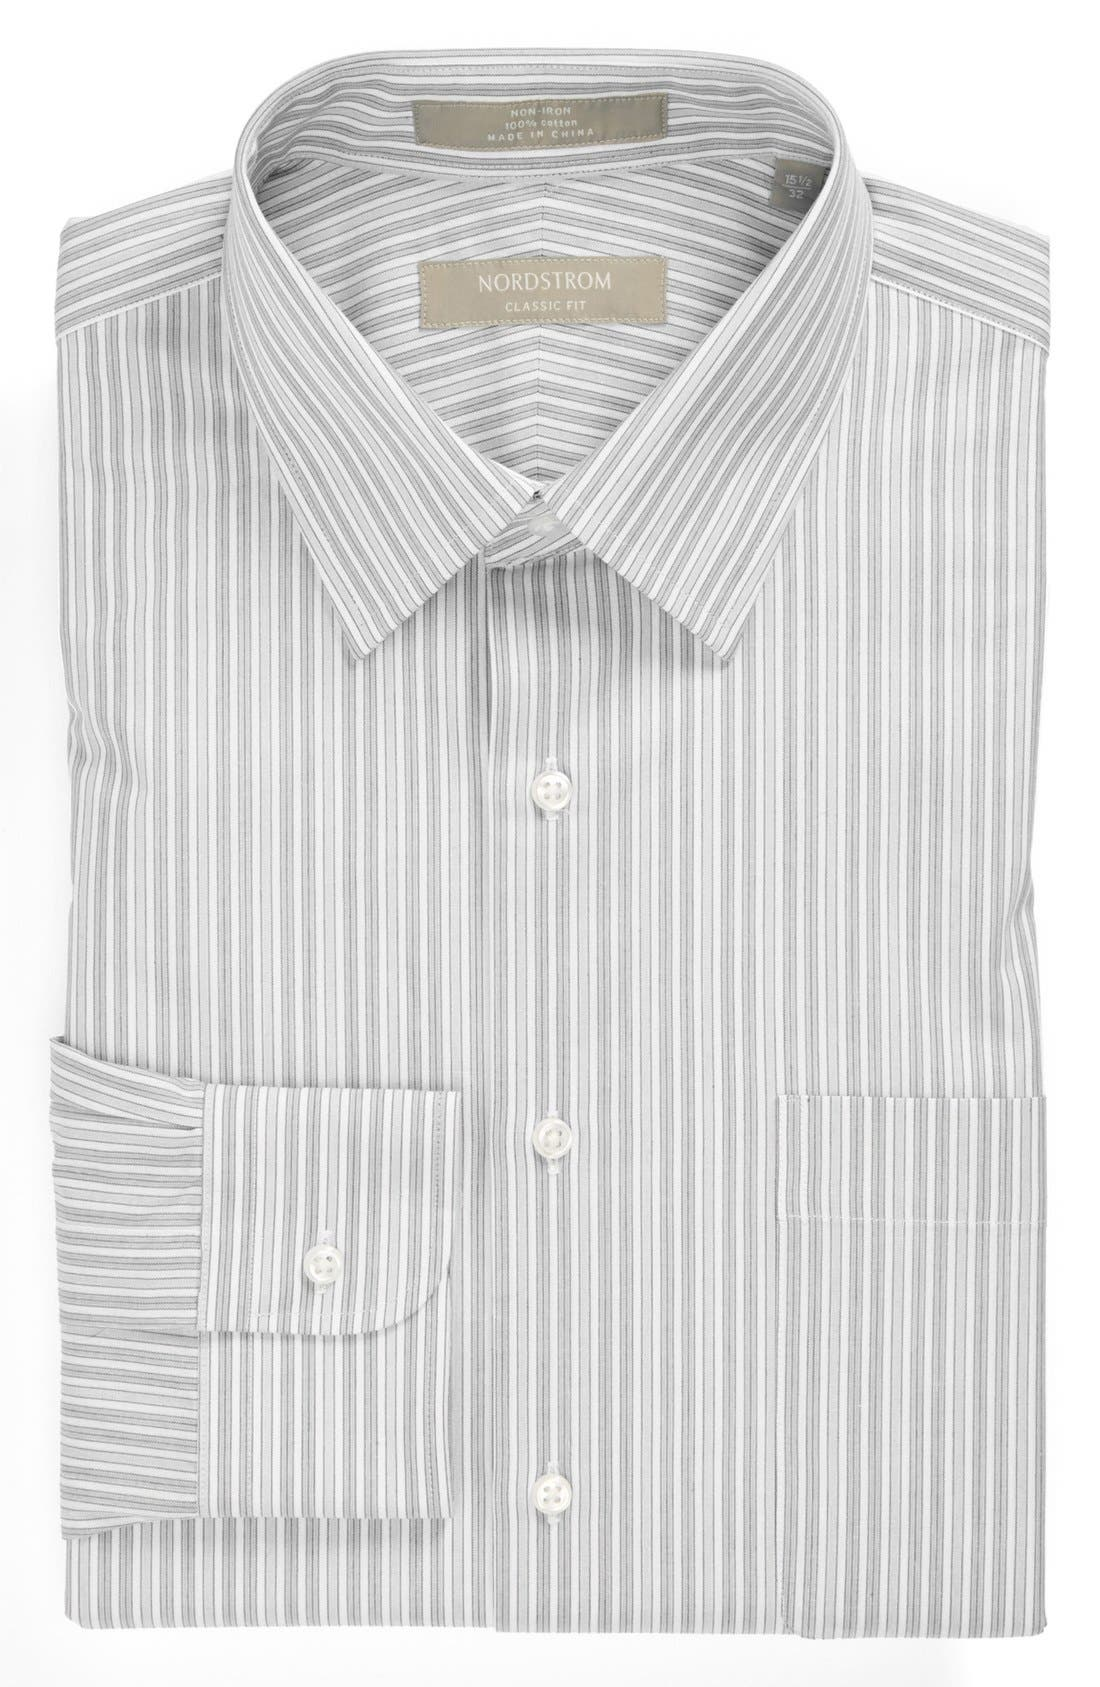 Nordstrom Classic Fit Non-Iron Dress Shirt,                             Main thumbnail 1, color,                             021